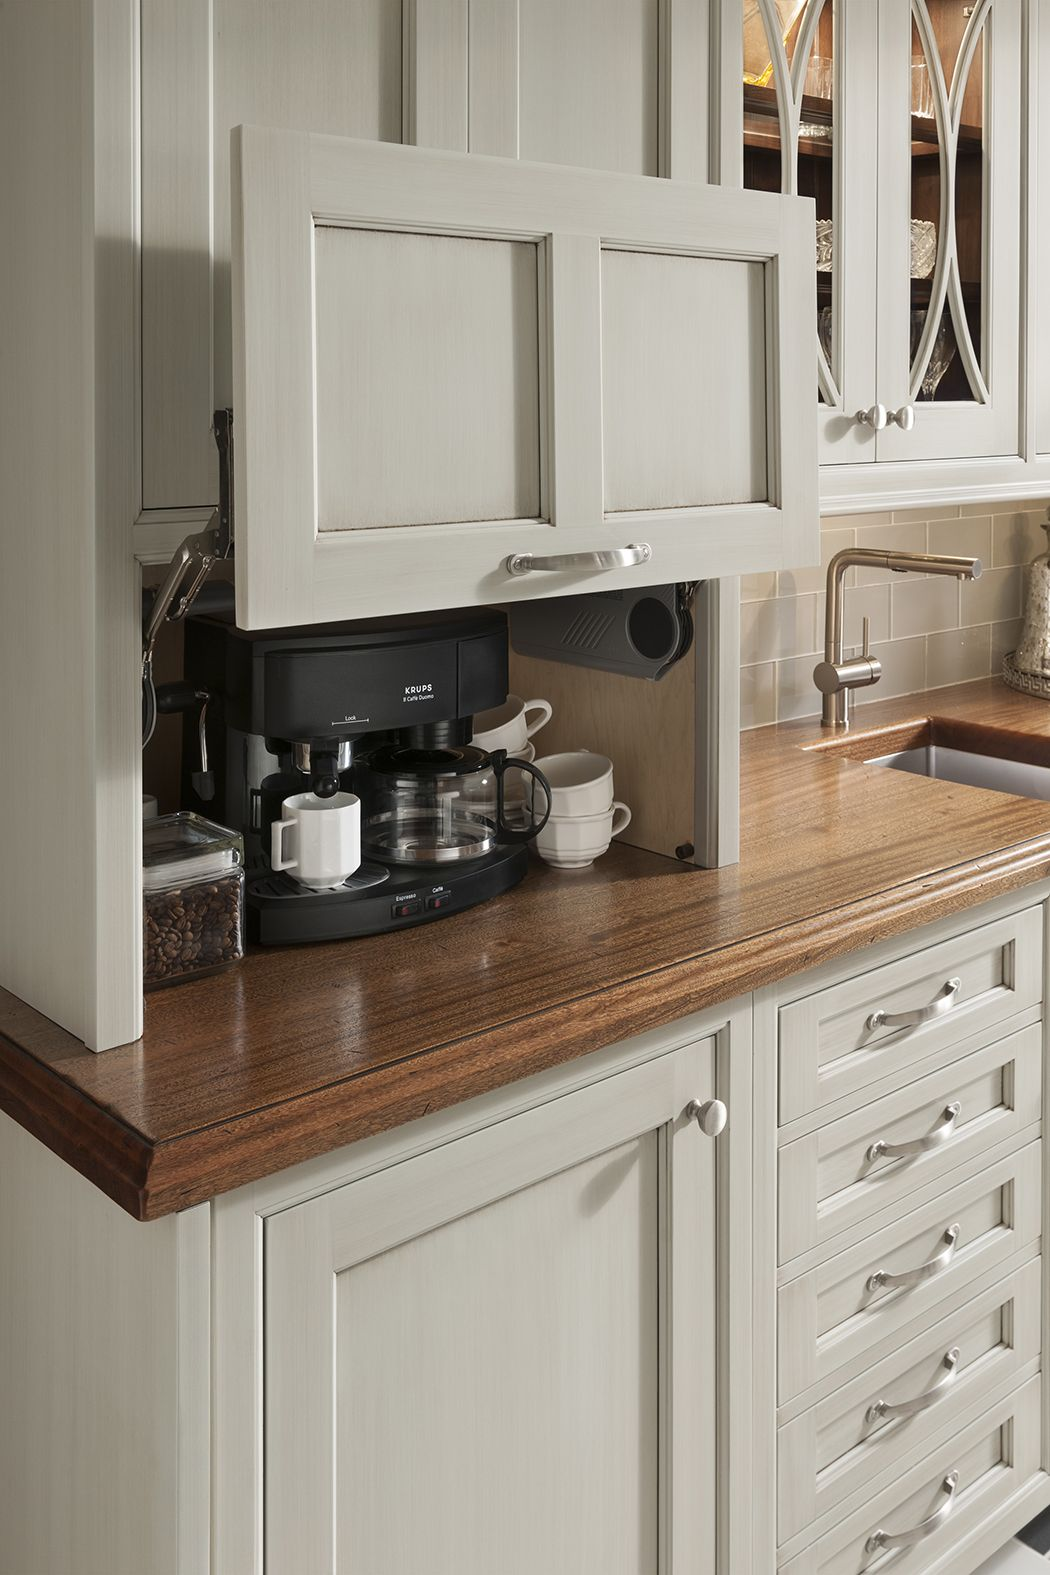 Trending in 2016 built in wet bars coffee stations and for Find your kitchen style